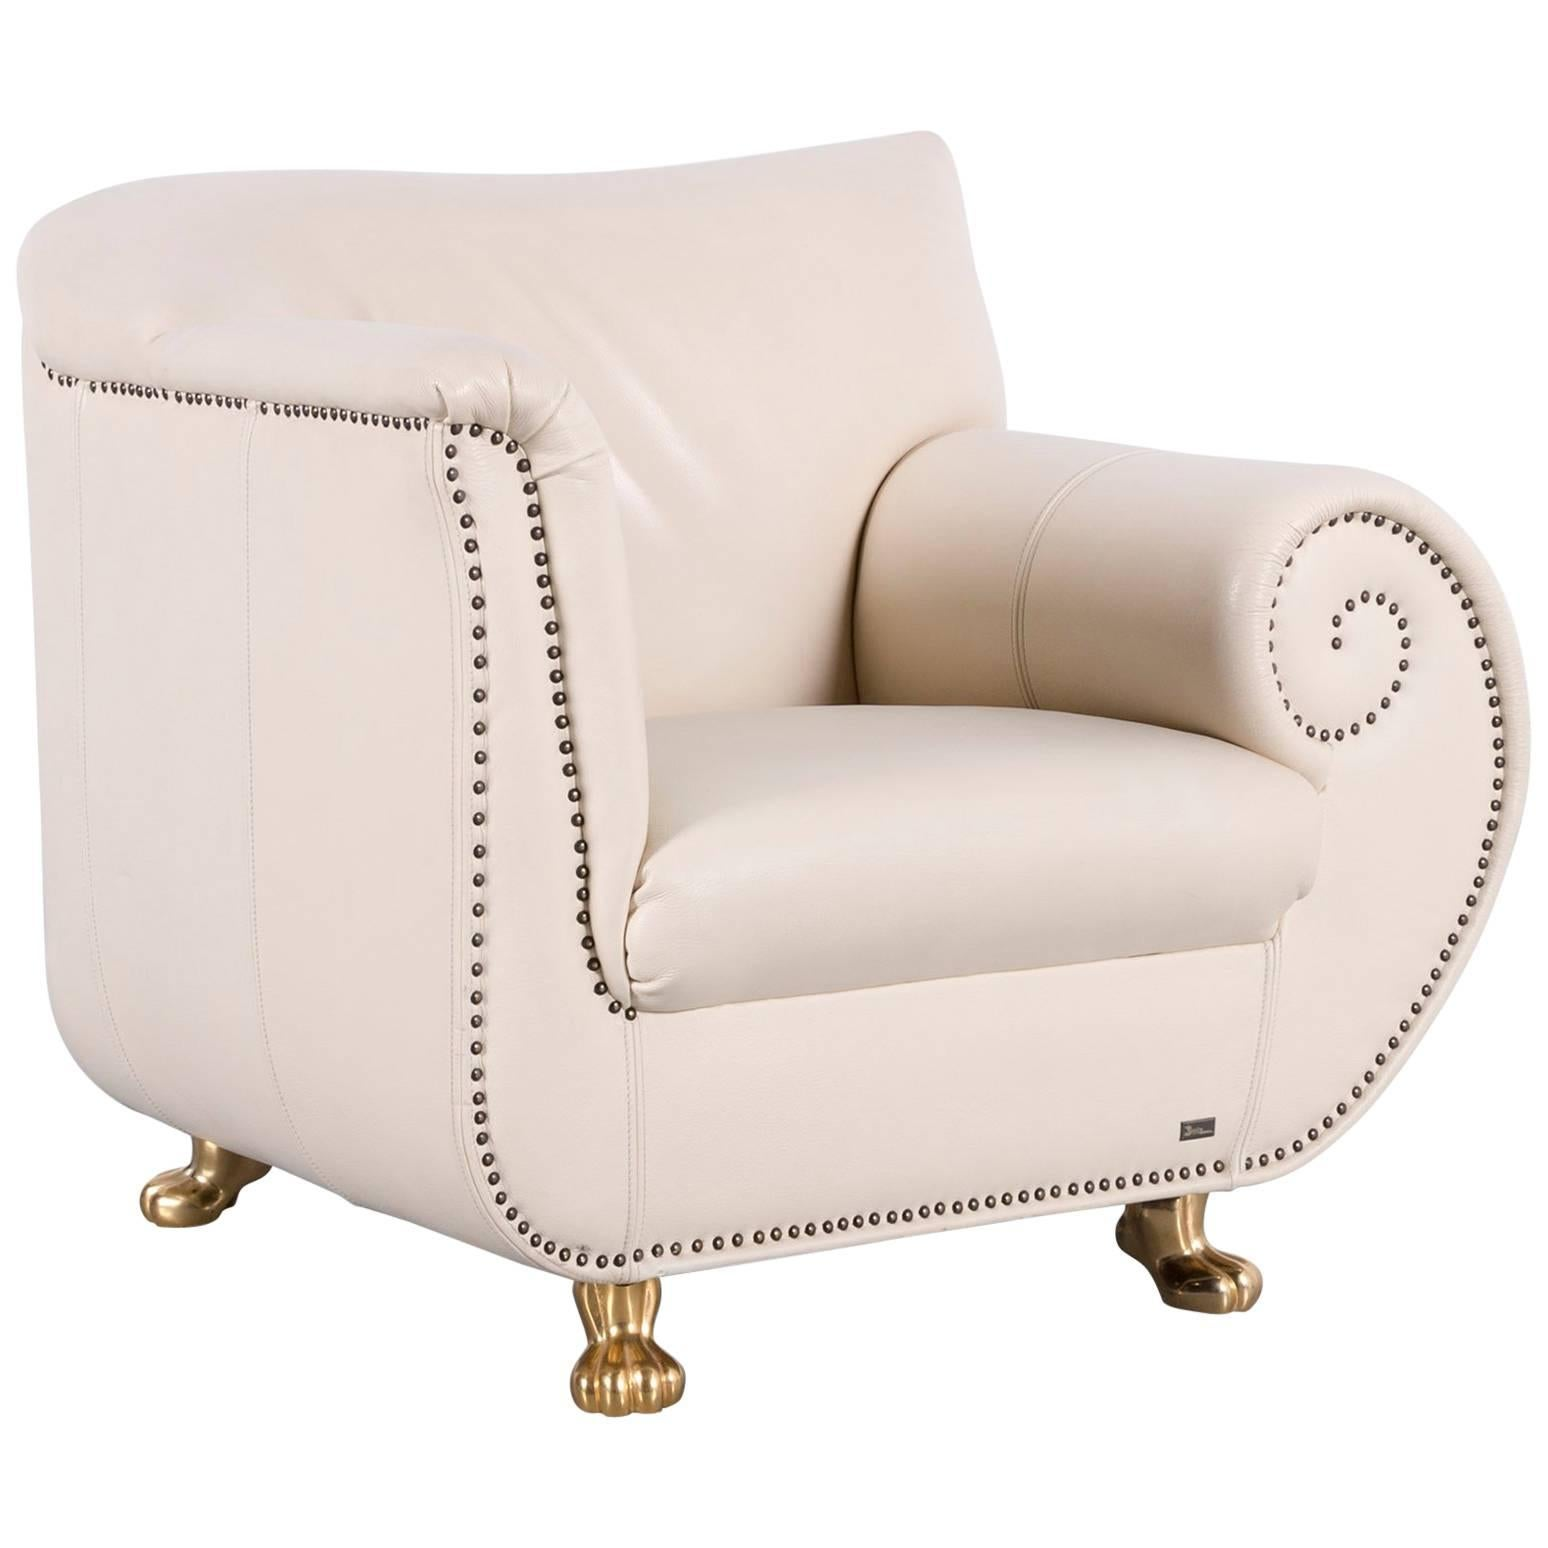 Bretz Gaudi Leather Armchair Off White One Seat For Sale